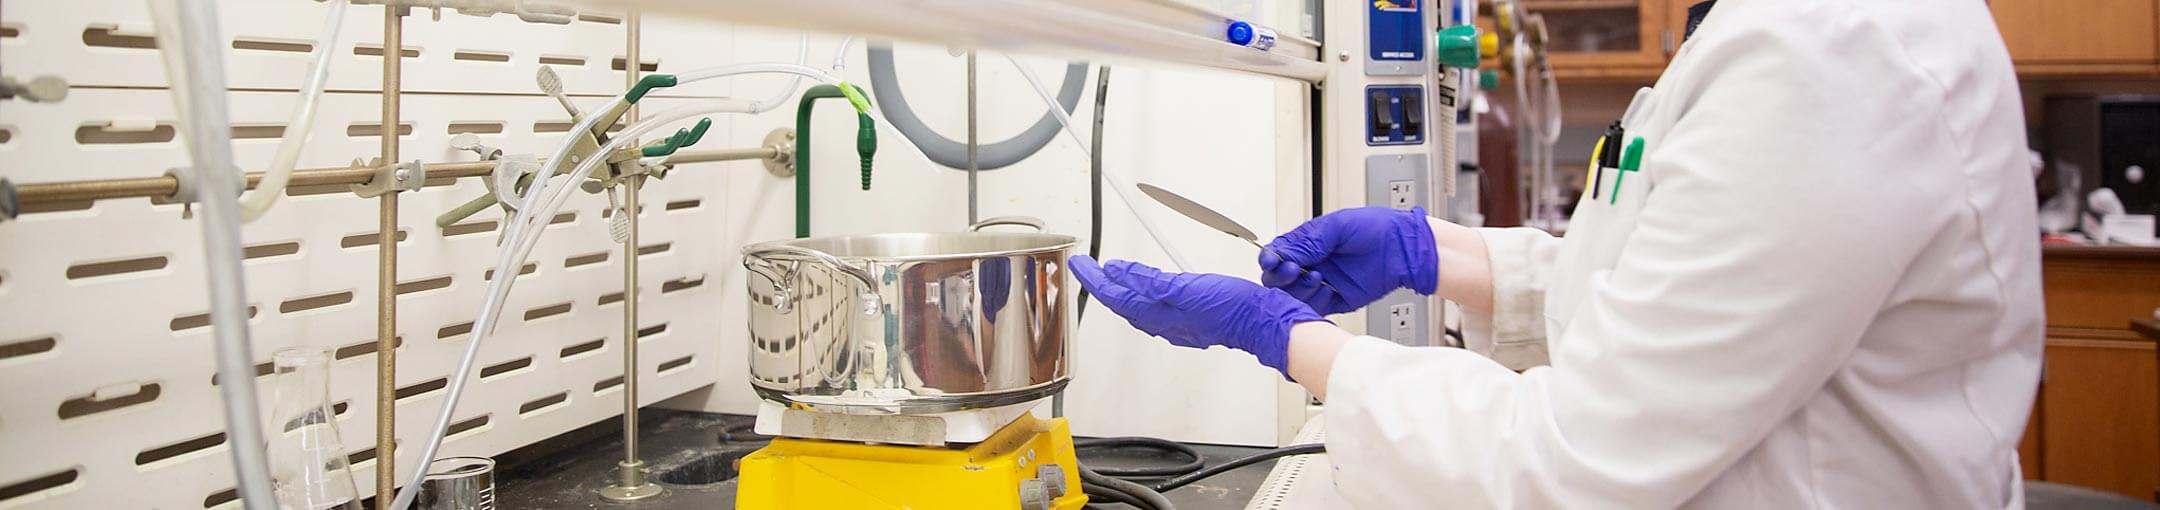 Student with purple gloves working in a lab.